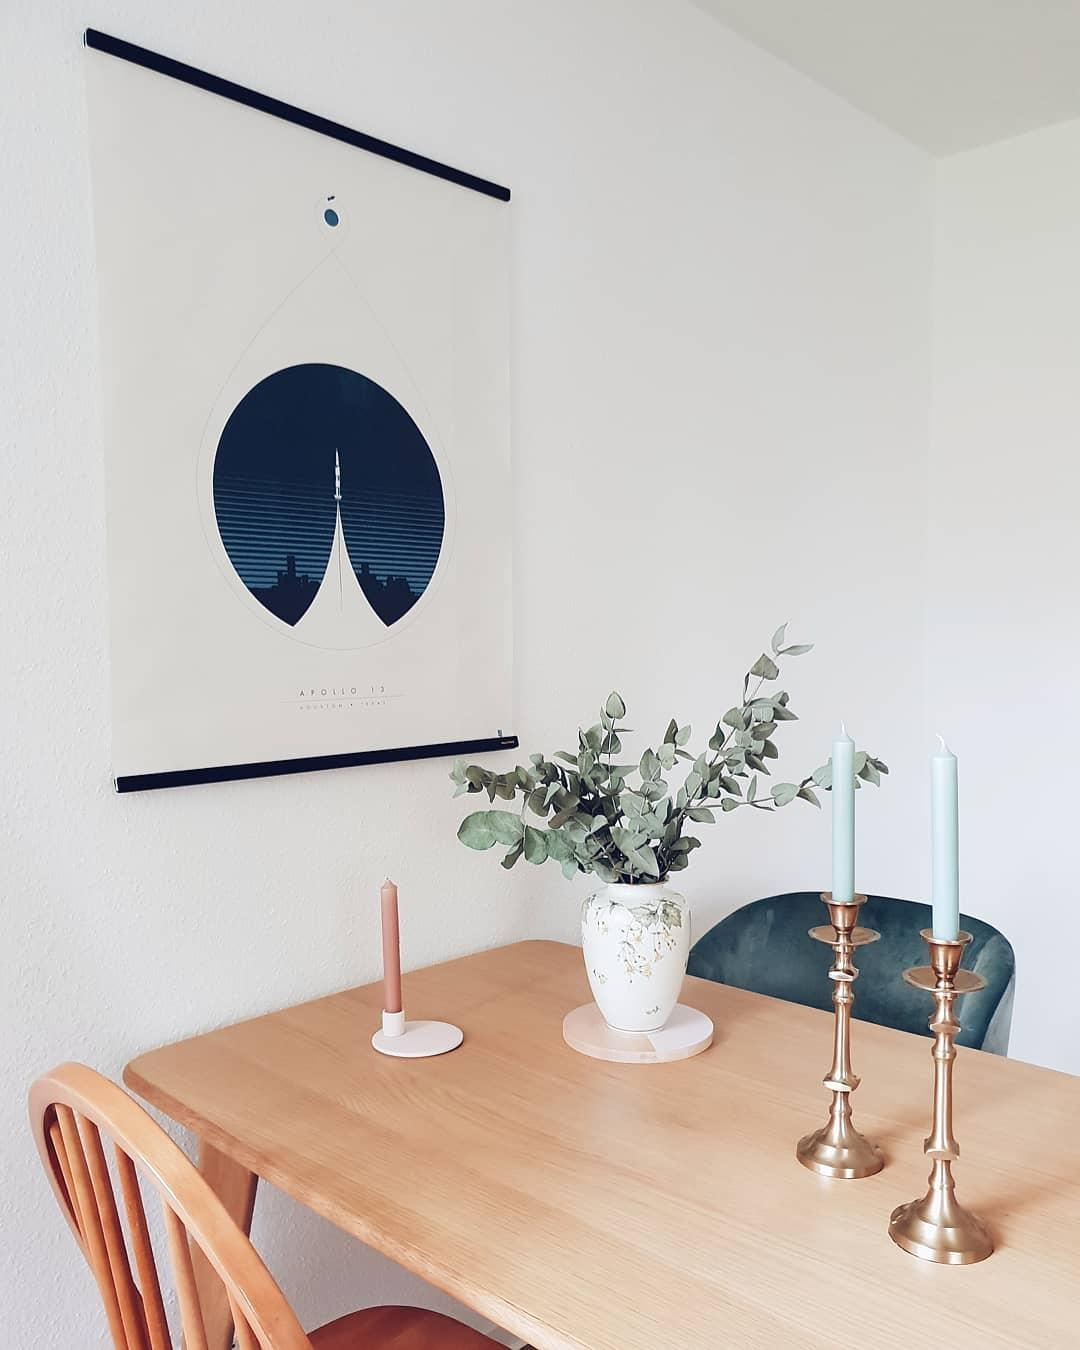 Ich mag mein Zuhause so. 💘 #homesweethome #home #homeinspo #interior #interiorinspo #details #decoration #diningroom #living